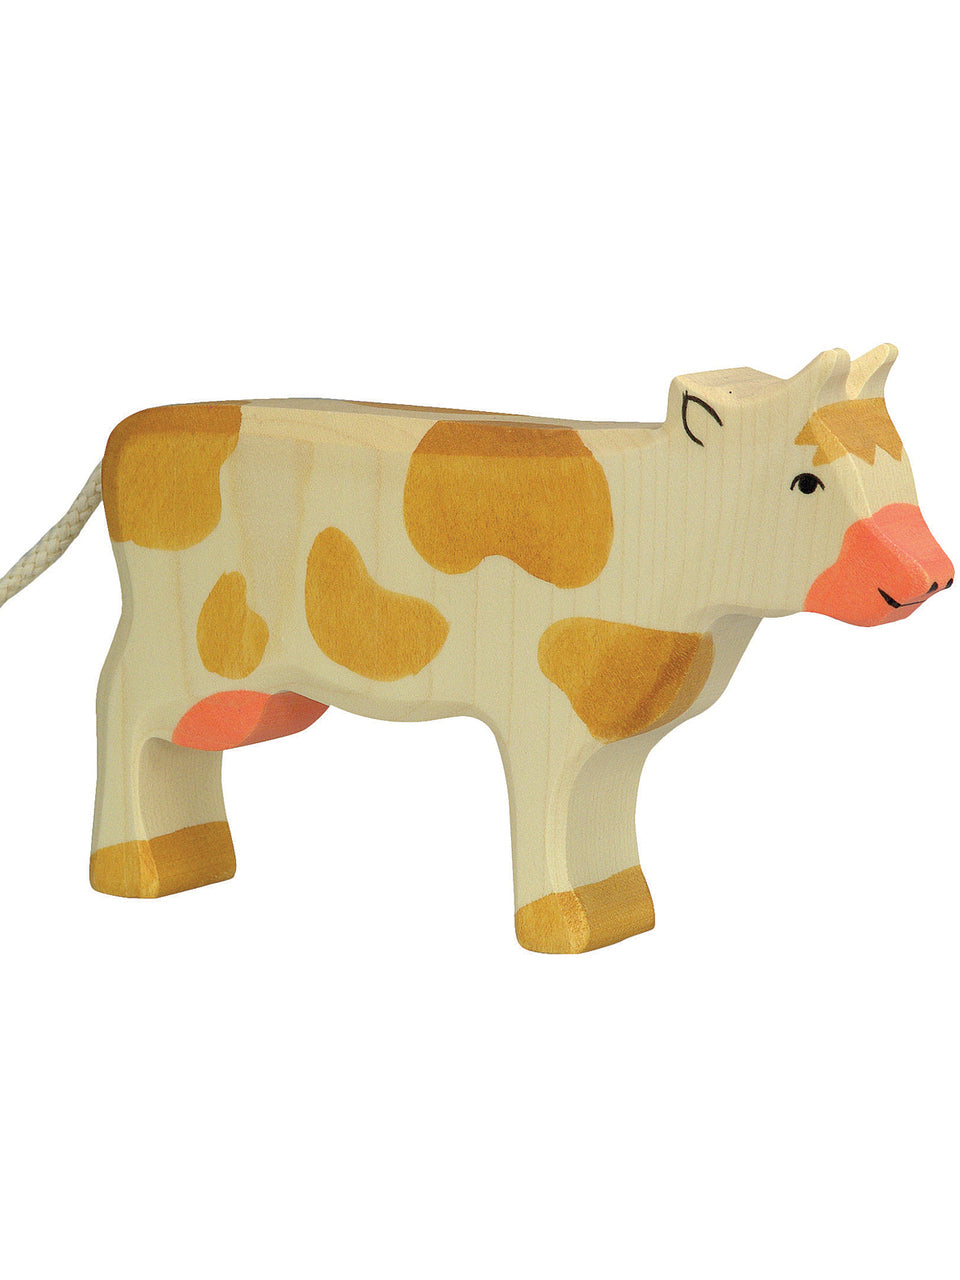 Wooden Spotted Cow